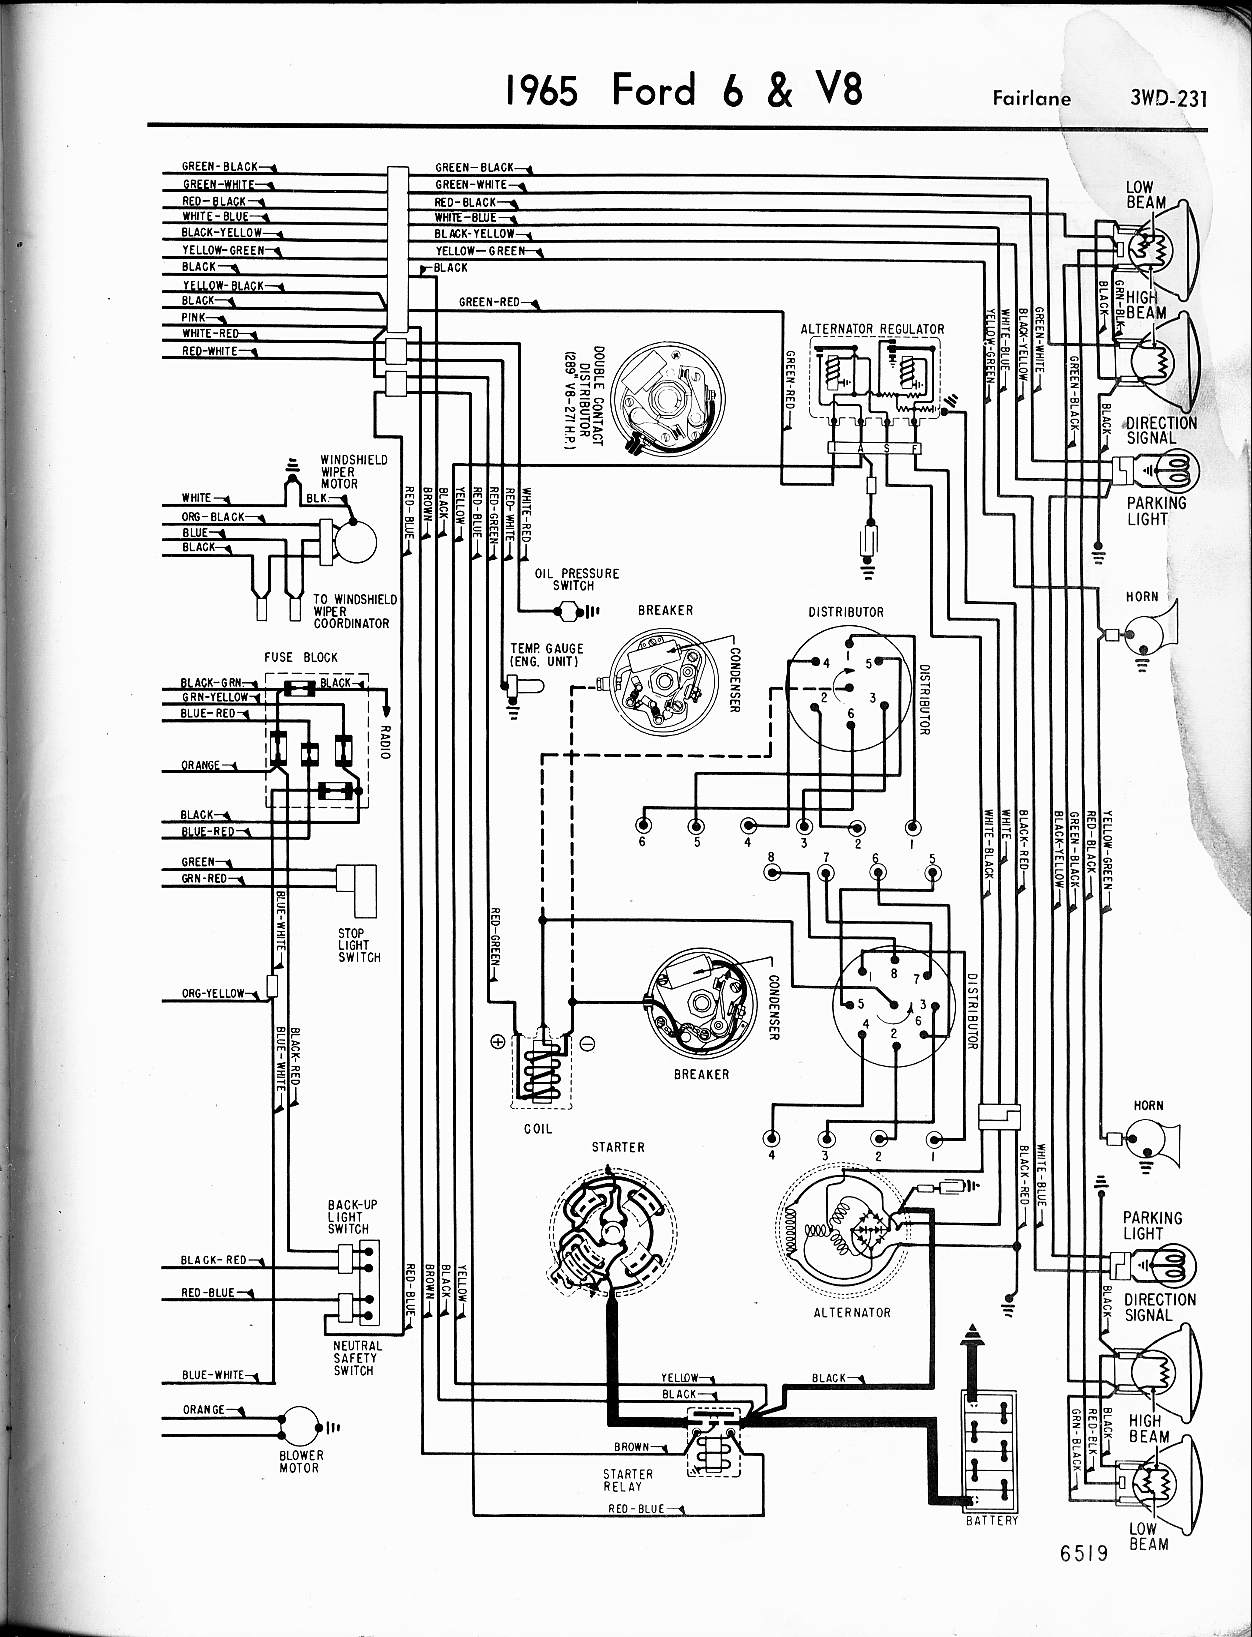 1969 ford f100 wiring diagrams wiring diagrams 1953 ford f100 wiring schematics car